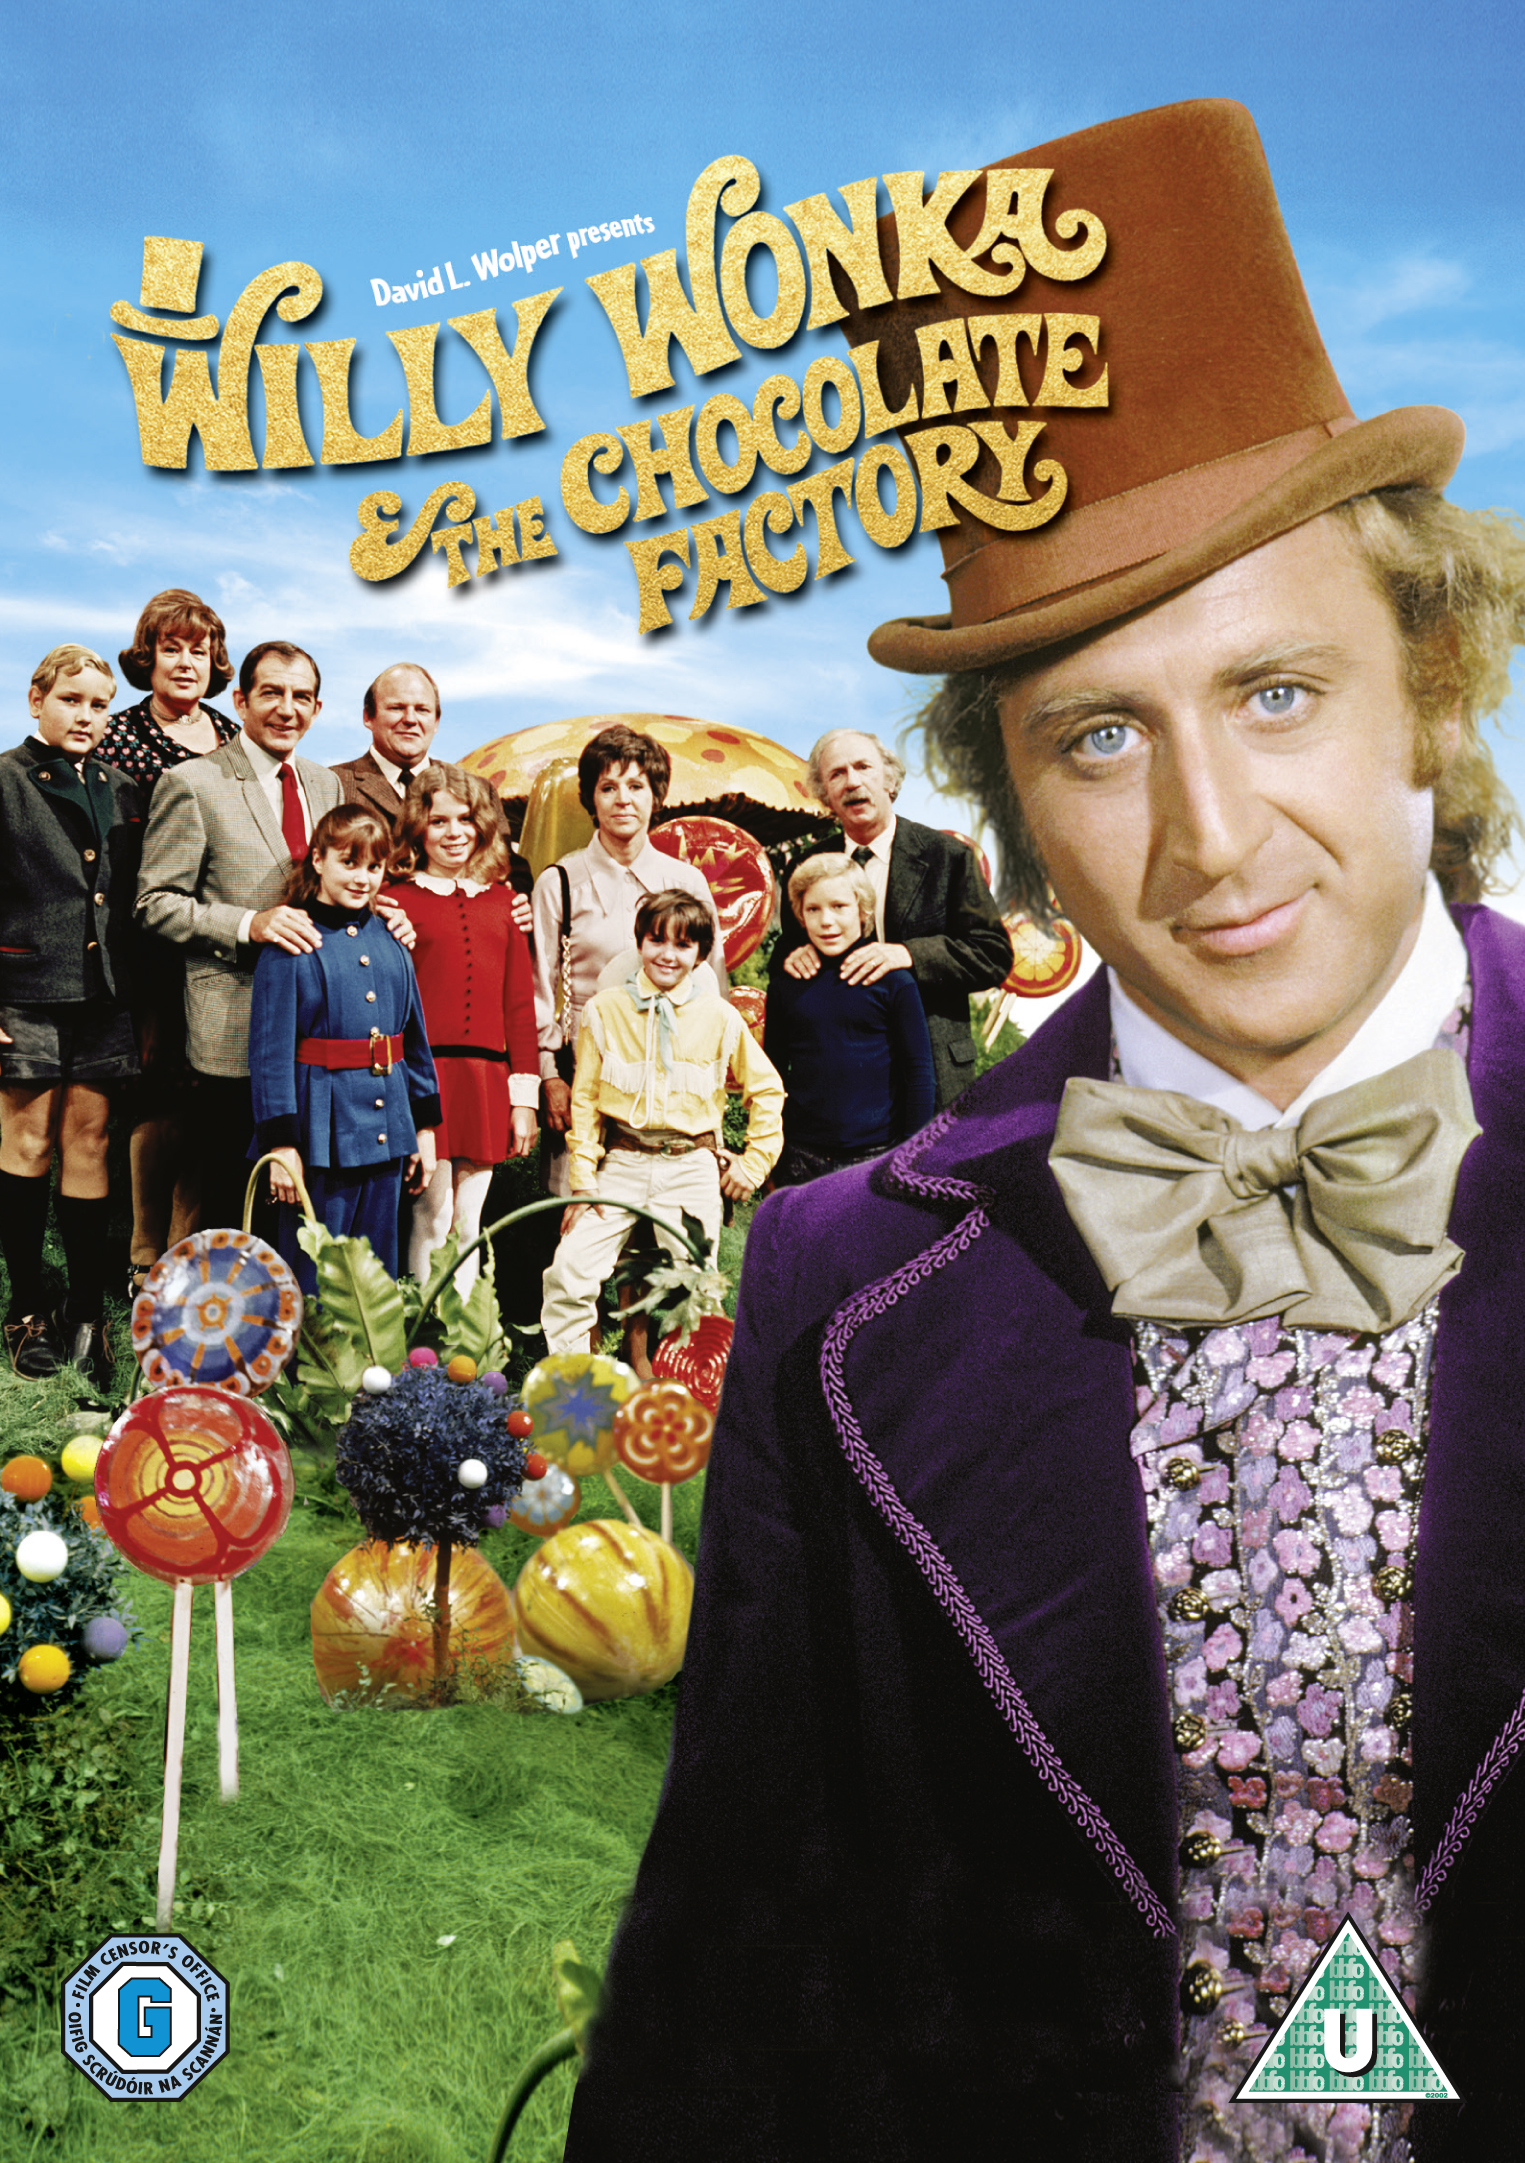 willy wonka and the chocolate factory thesis